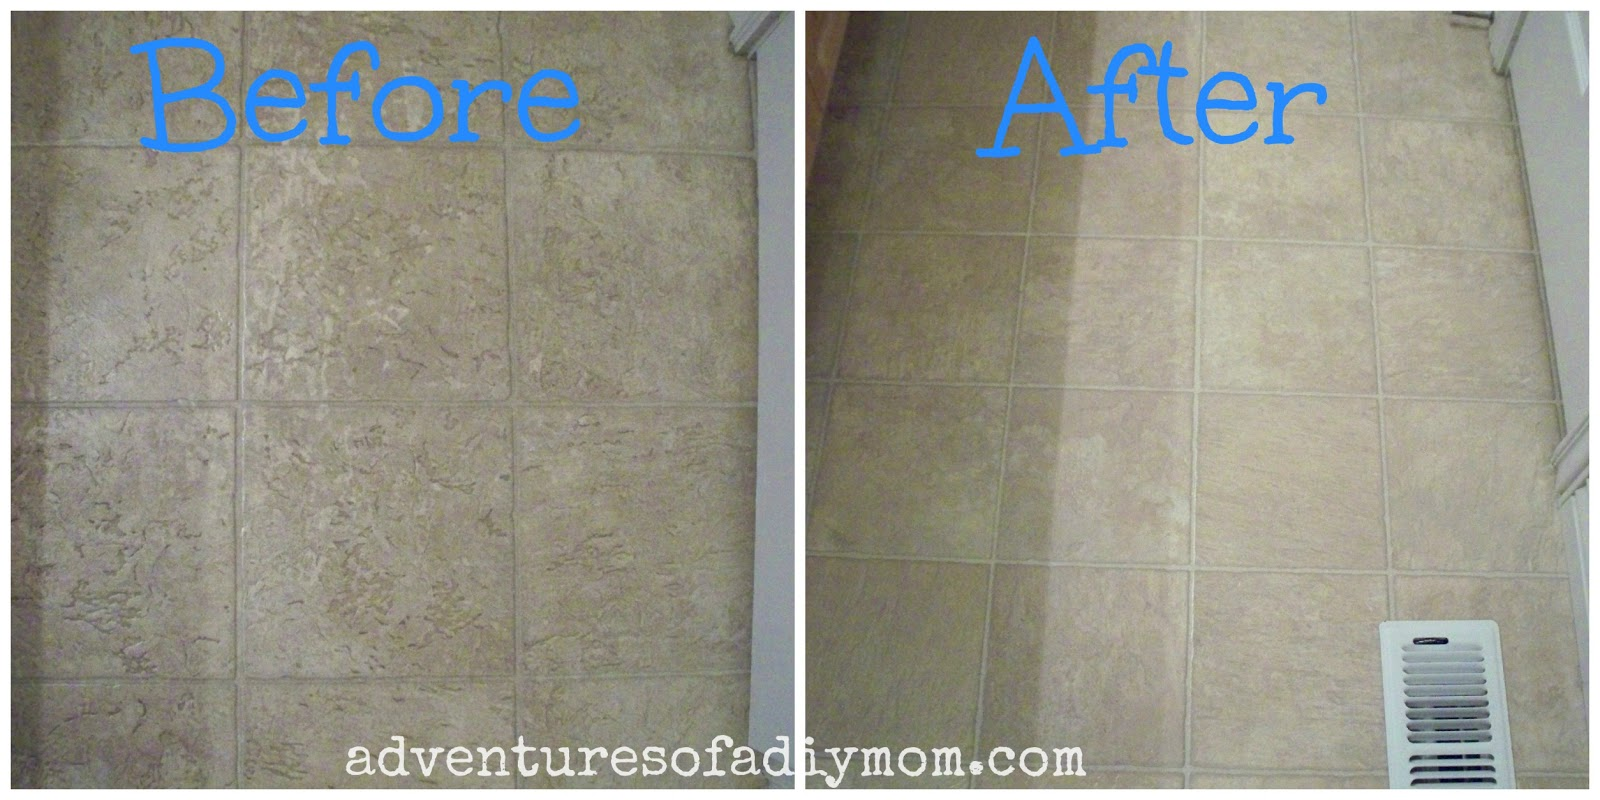 How To Remove Hairspray Residue From Floor Adventures Of A DIY Mom - Bathroom floor tile cleaning products